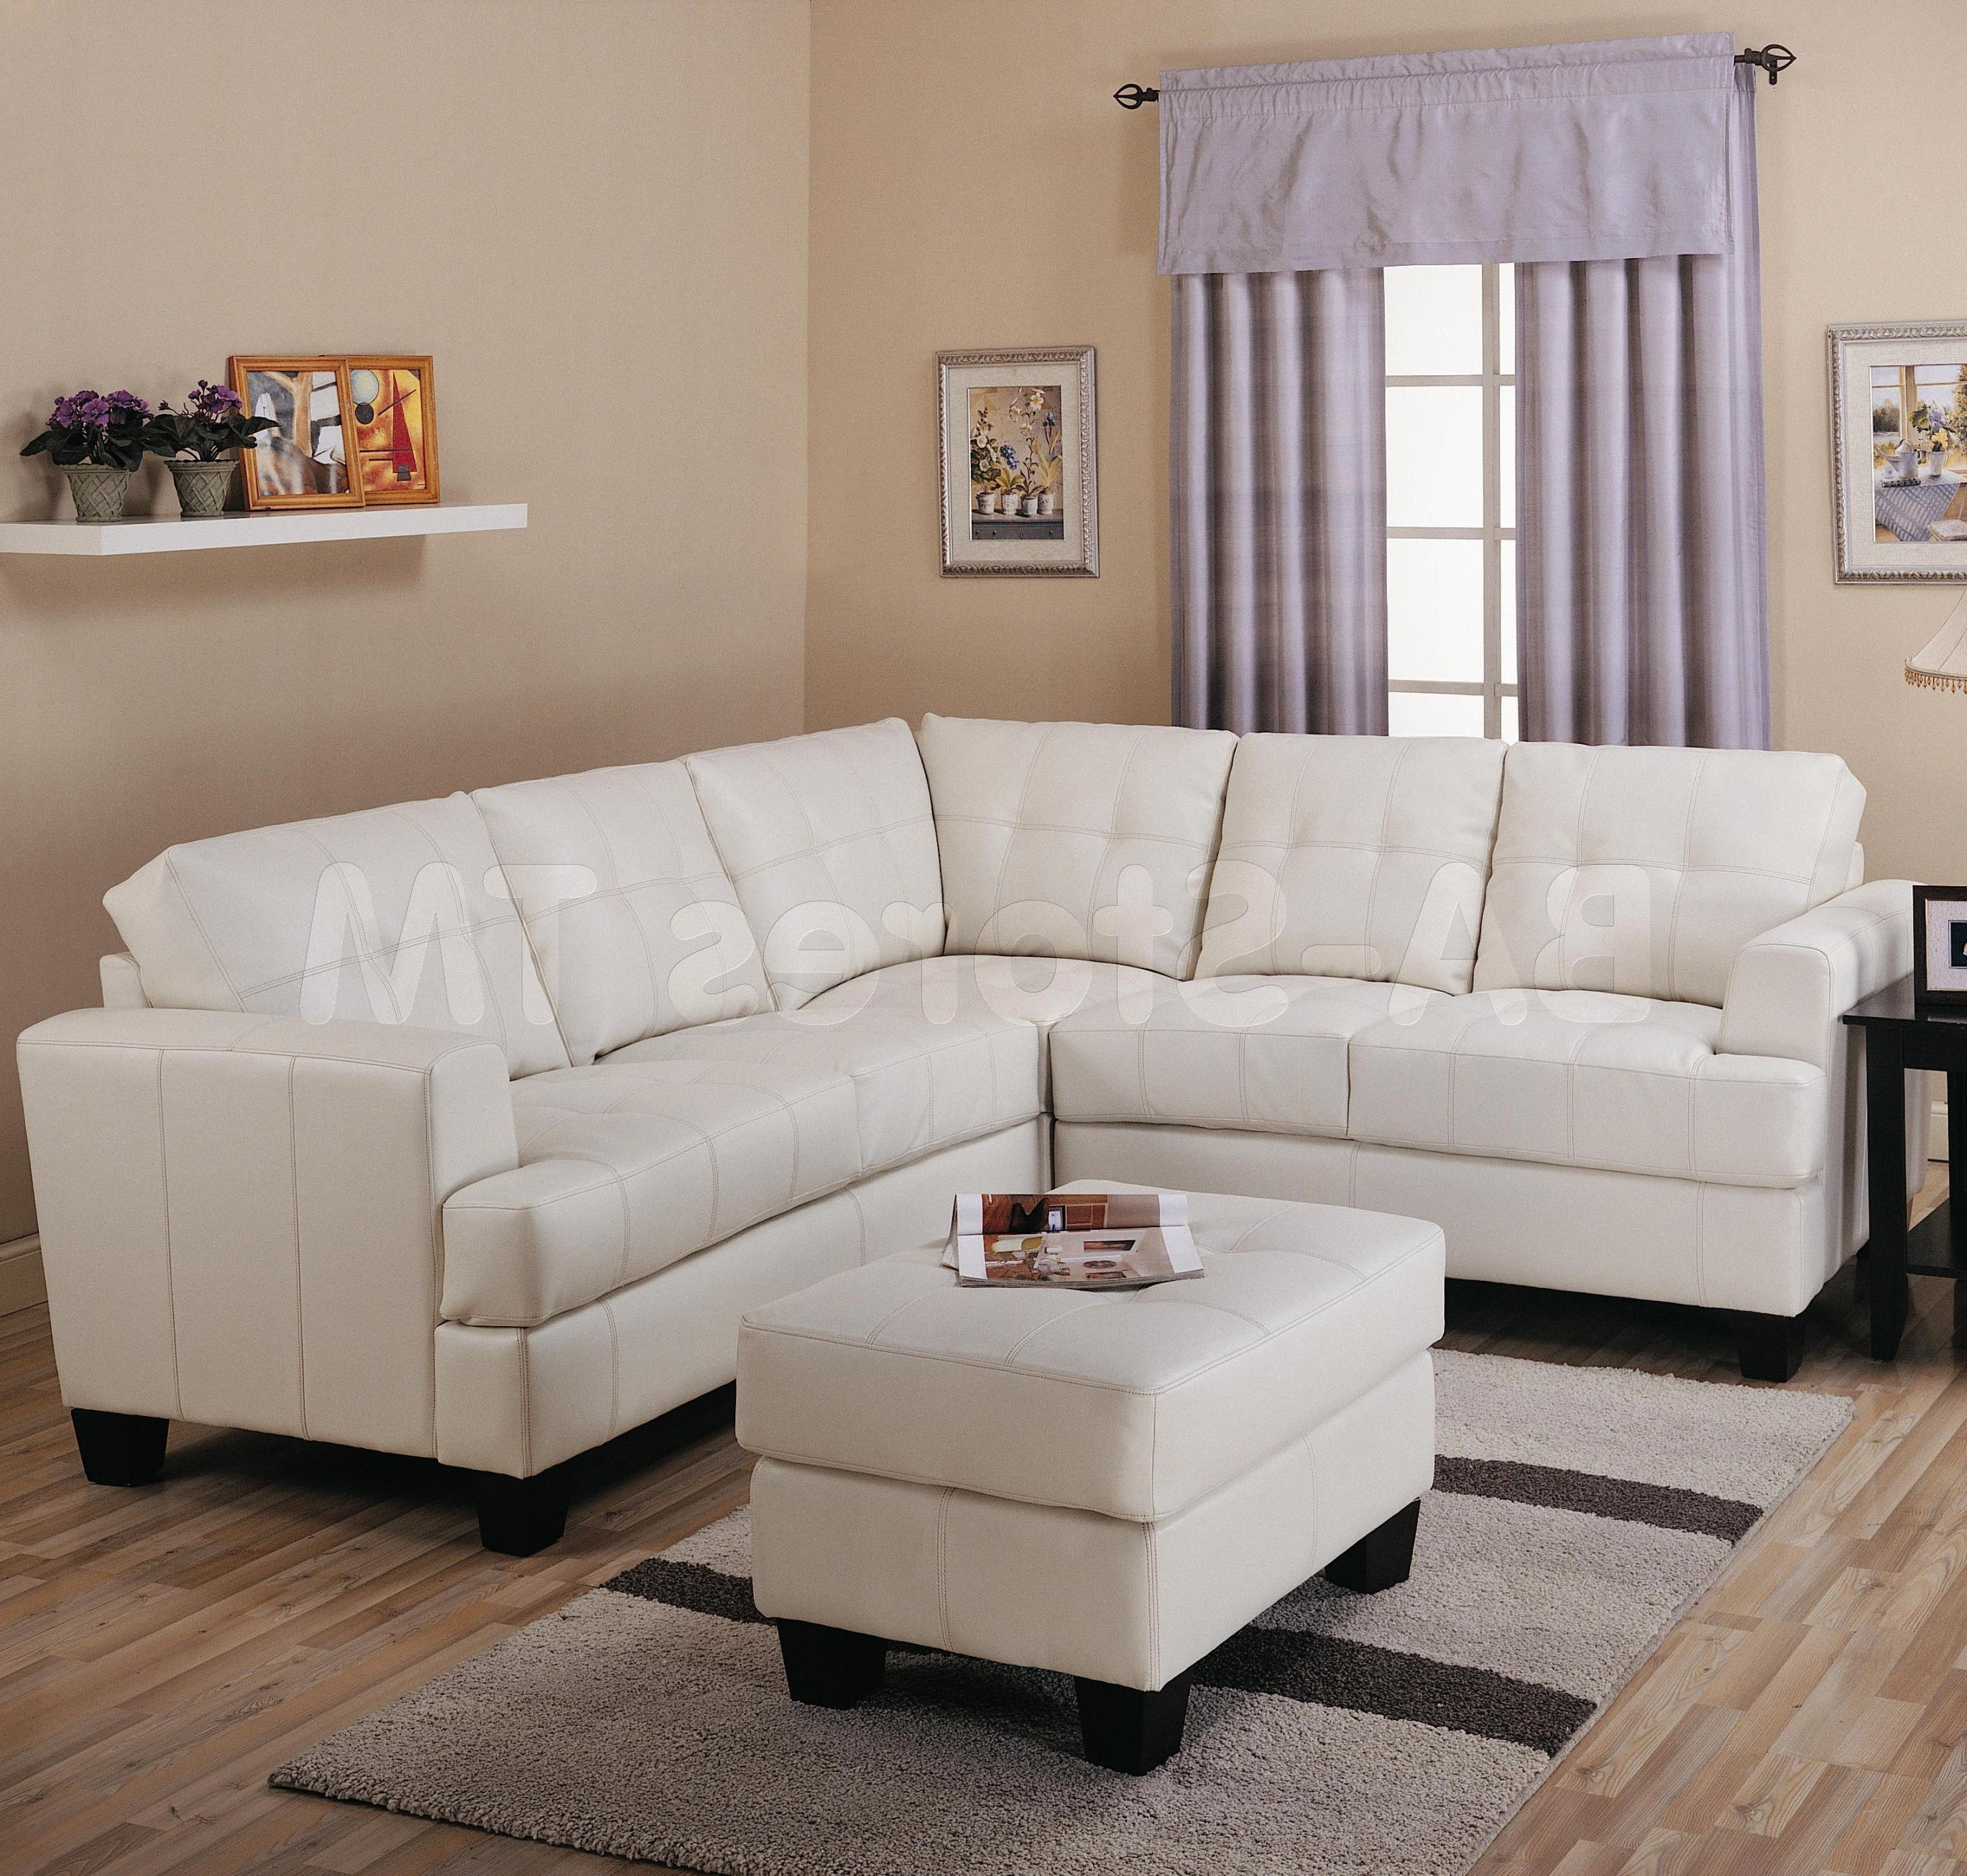 Well Liked Sectional Sofa Design: Adorable Cream Leather Sectional Sofa Cream Regarding Nanaimo Sectional Sofas (View 15 of 15)